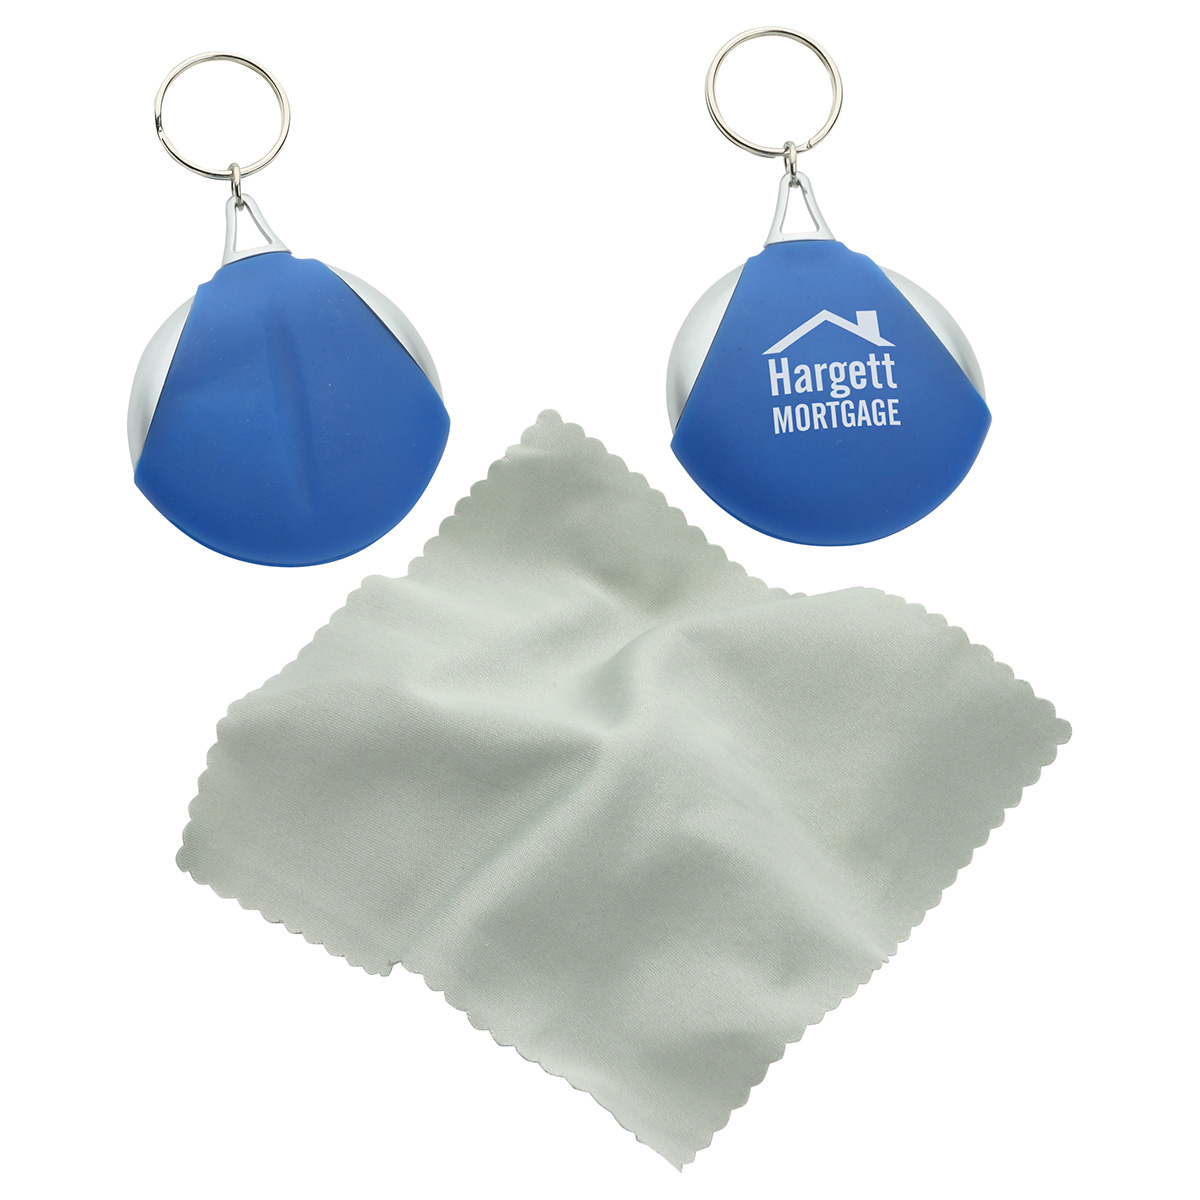 Pocket Microfiber Lens Cloth Key Chain, WEE-PC11, 1 Colour Imprint